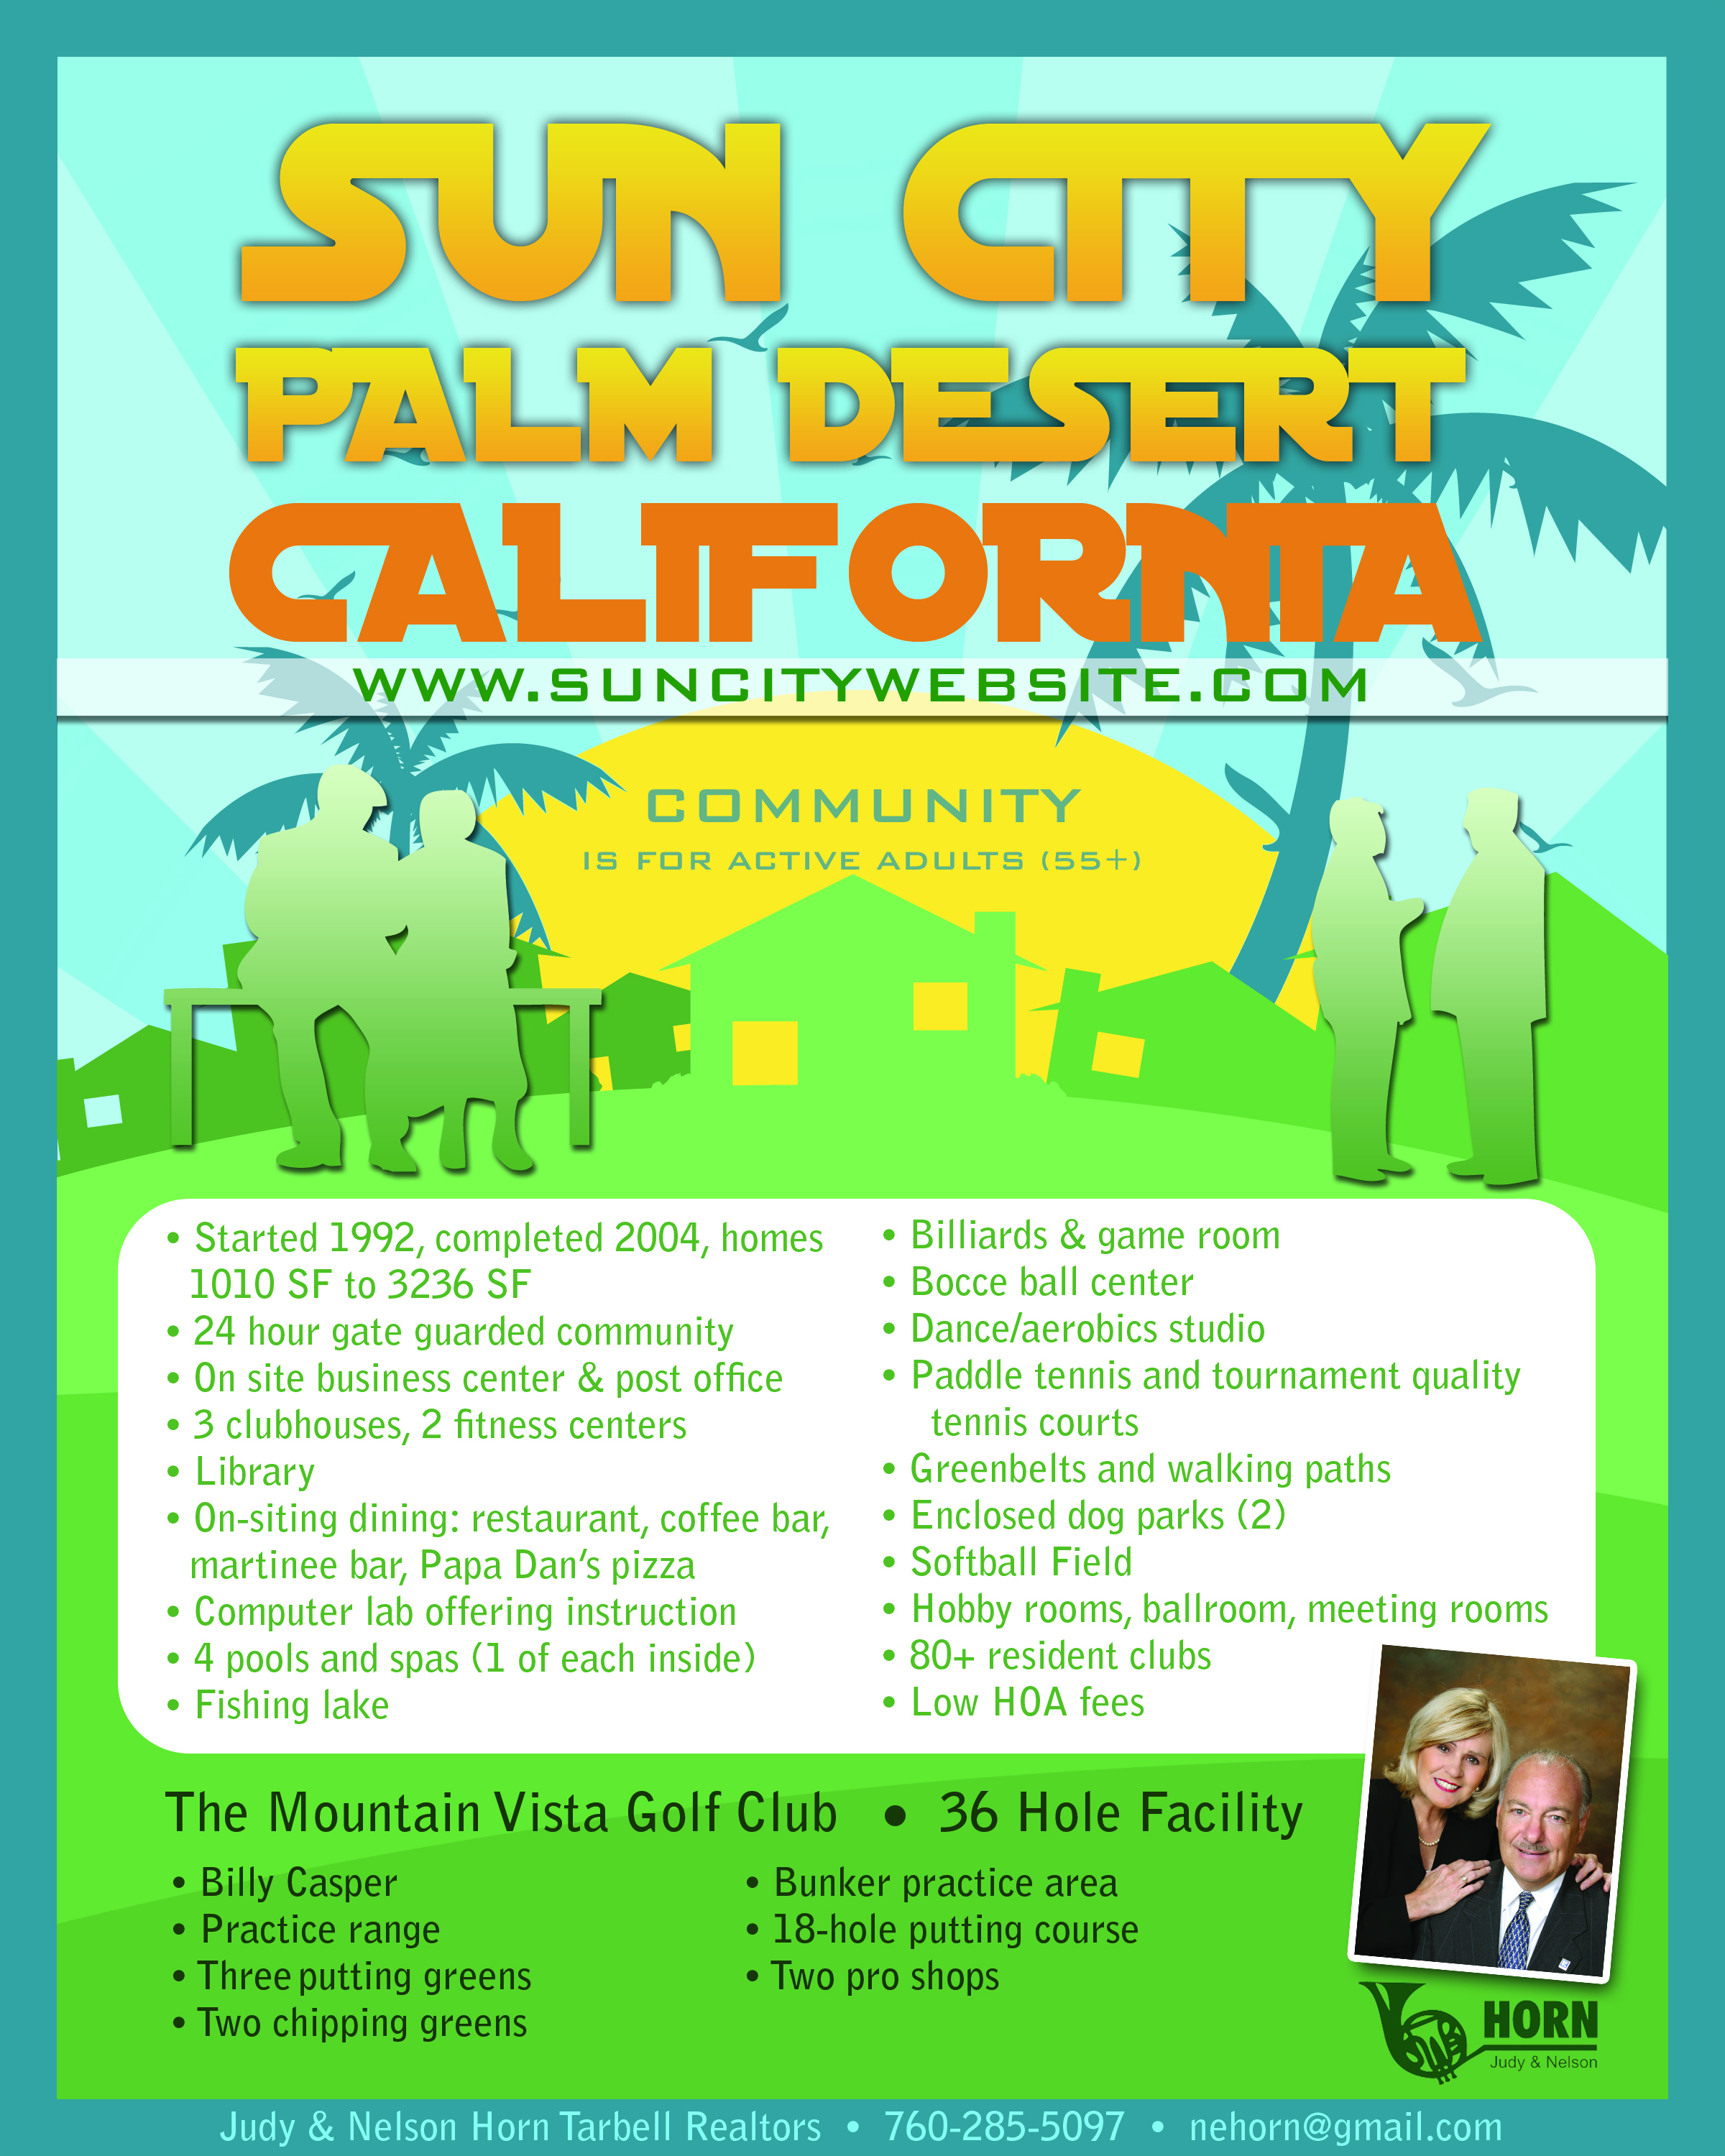 INFOGRAPHIC  SOME CITY PALM DESERT AMENITIES